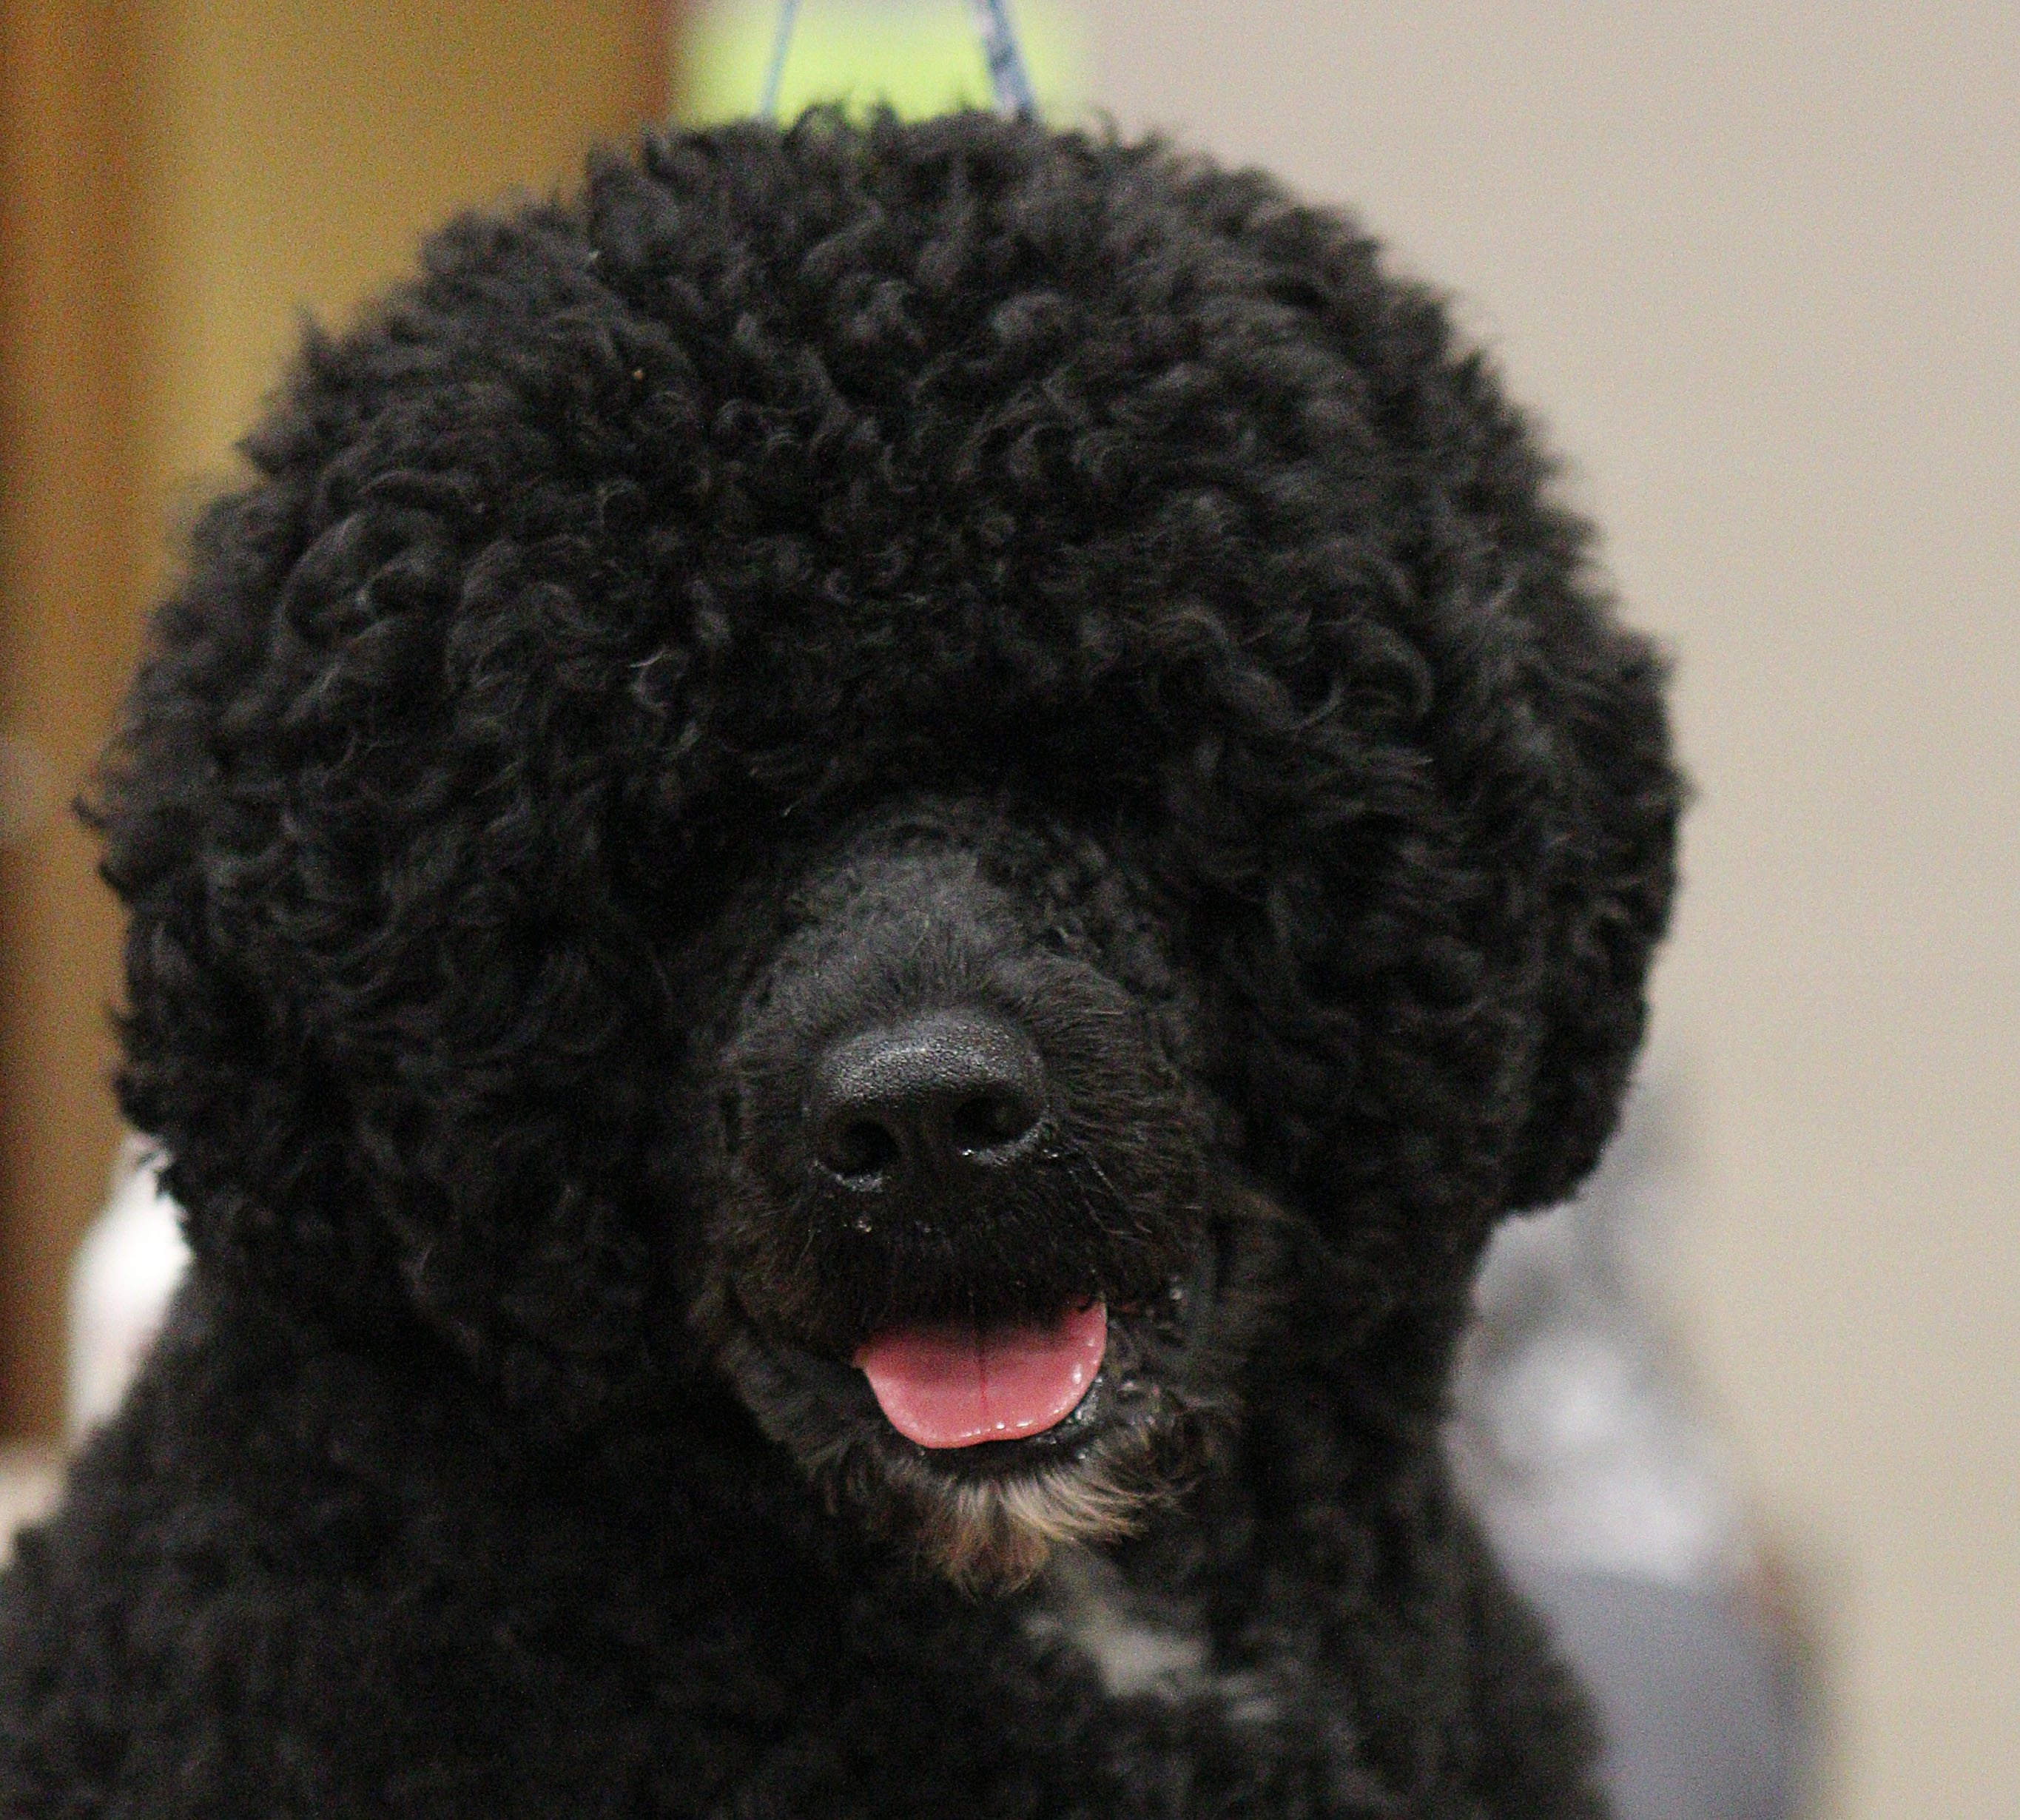 Max, a Portuguese water dog, is groomed and ready for the competition.